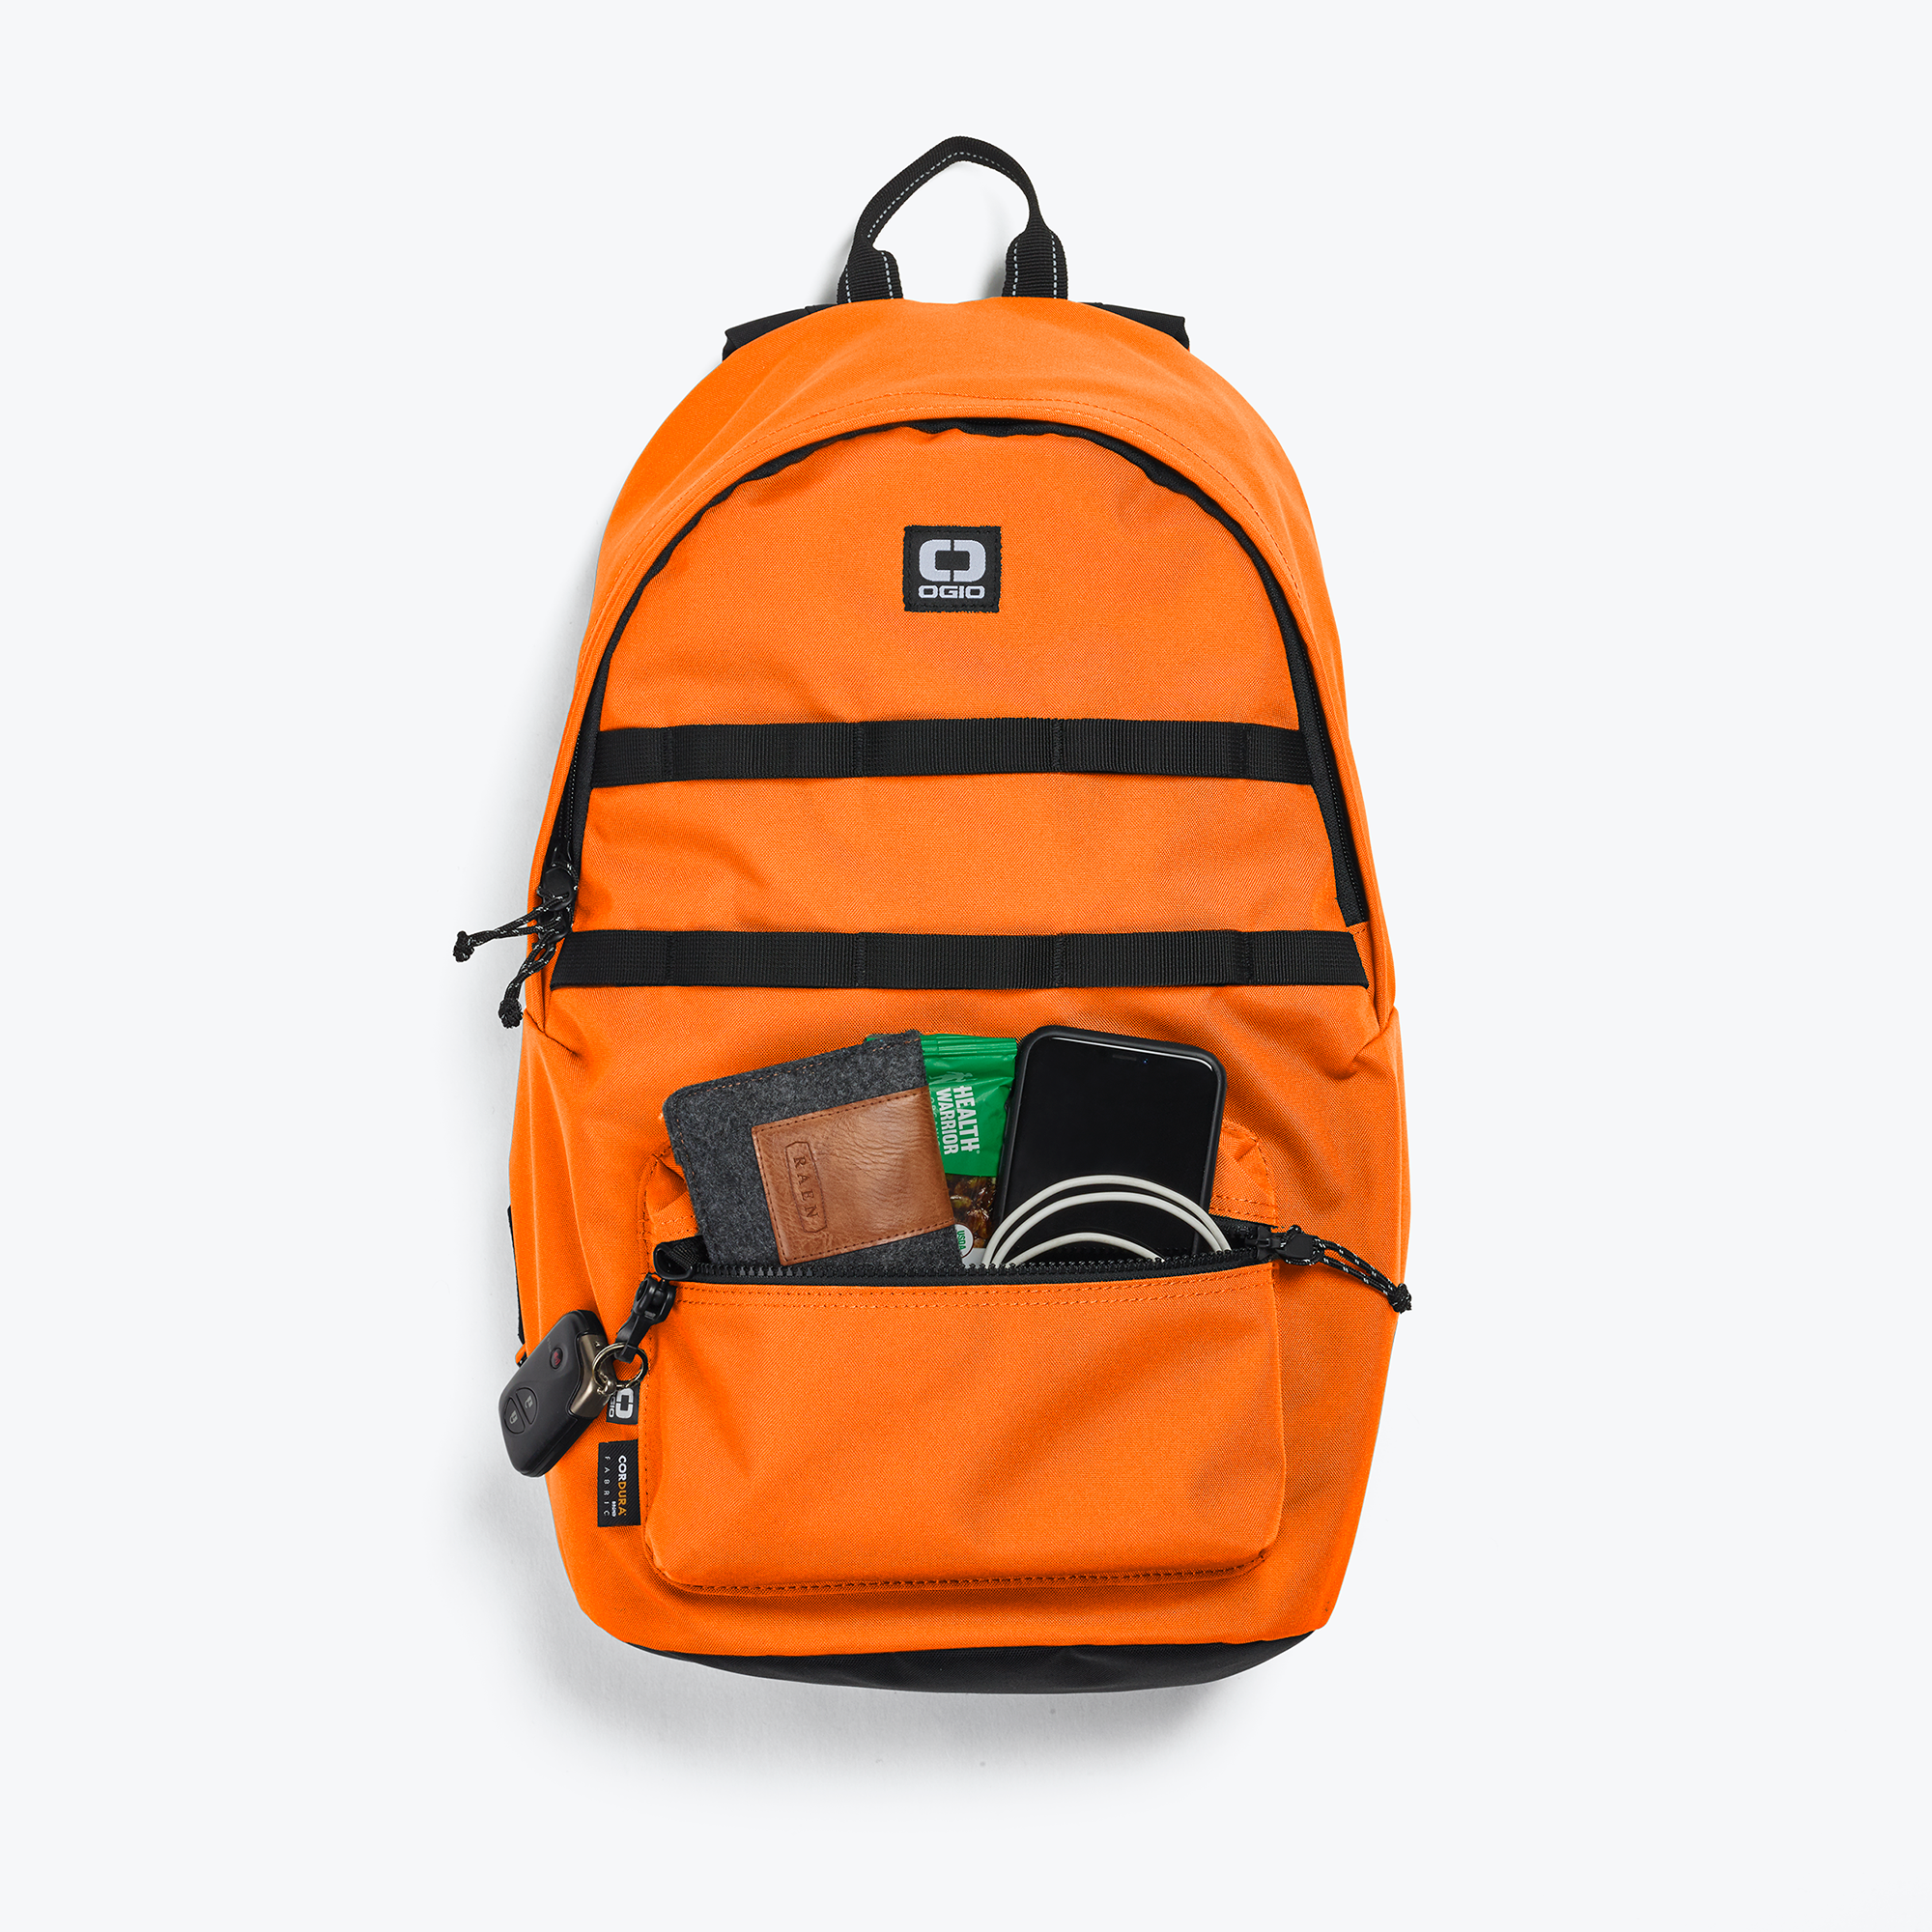 ALPHA Convoy 120 Backpack - View 7